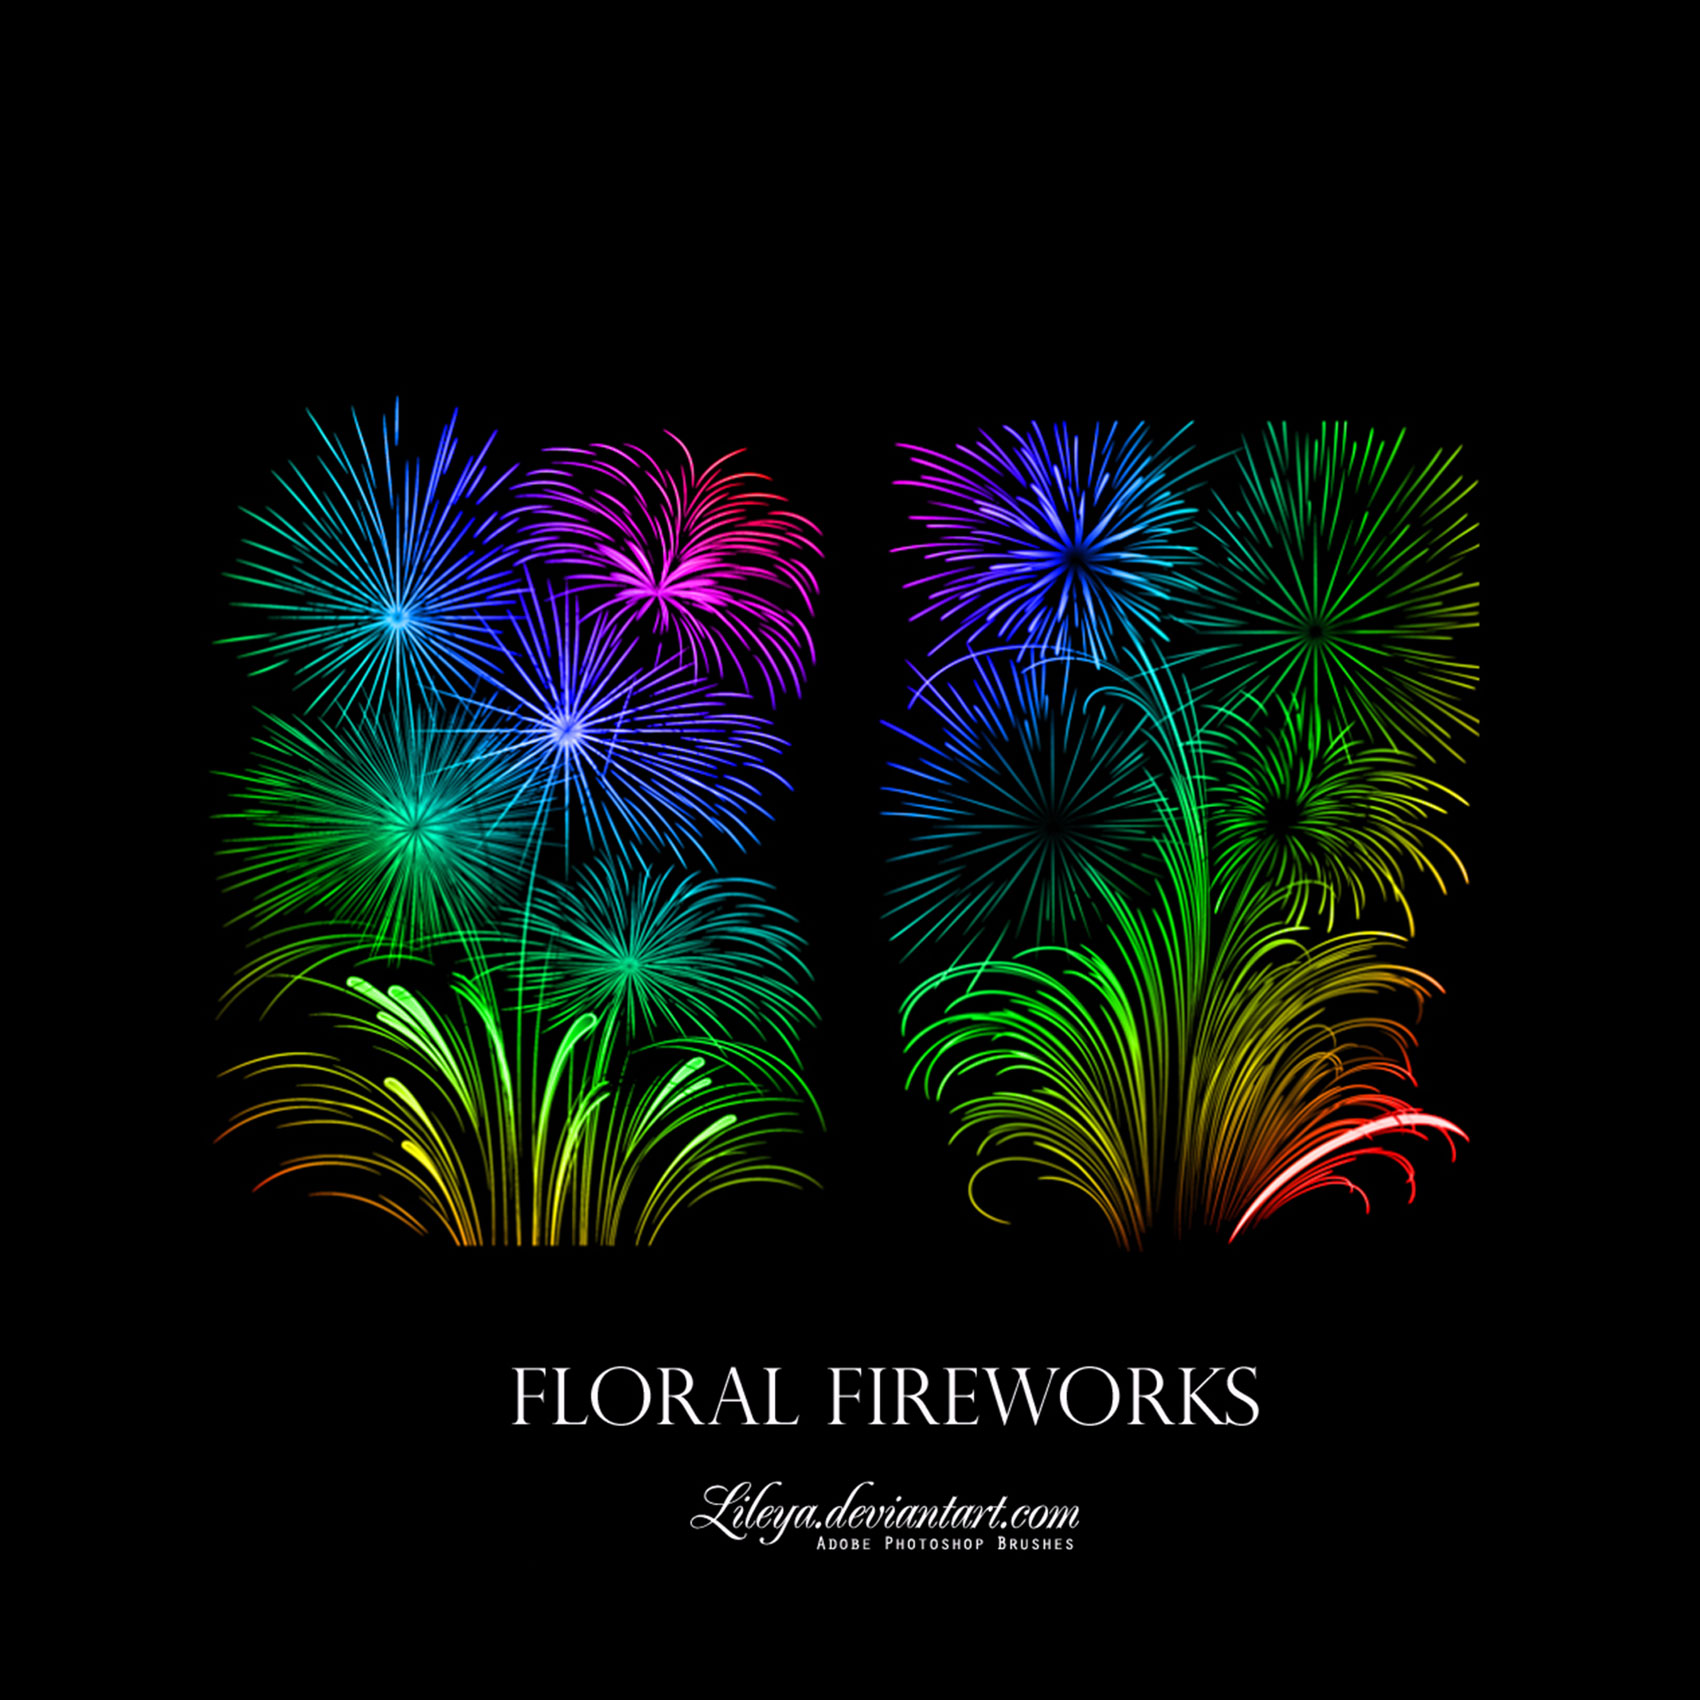 Free Photoshop Brush Sets Floral Fireworks